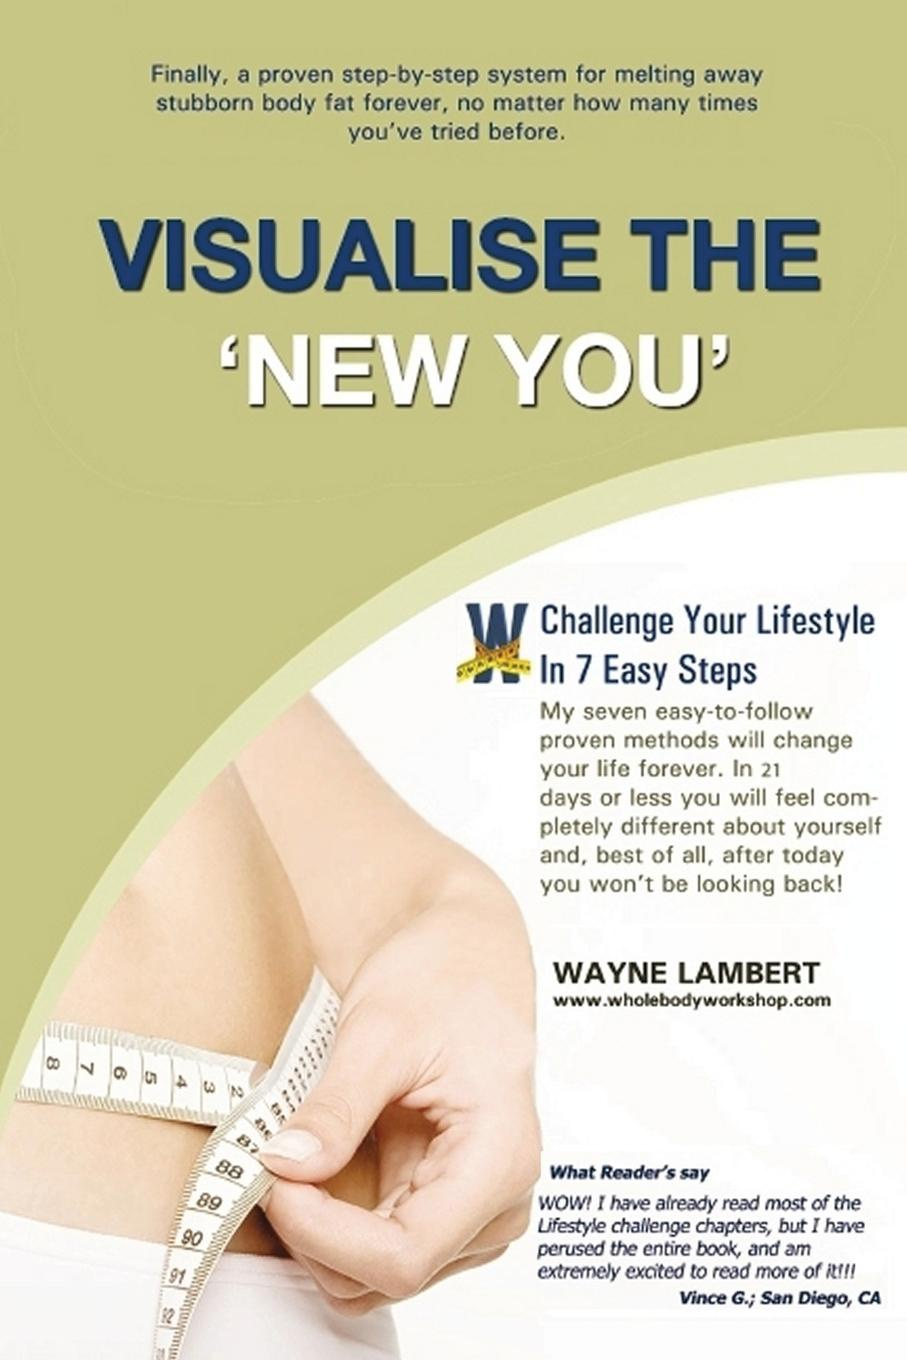 Wayne Lambert Visualise the .New You. - E.follow Weight Loss Program